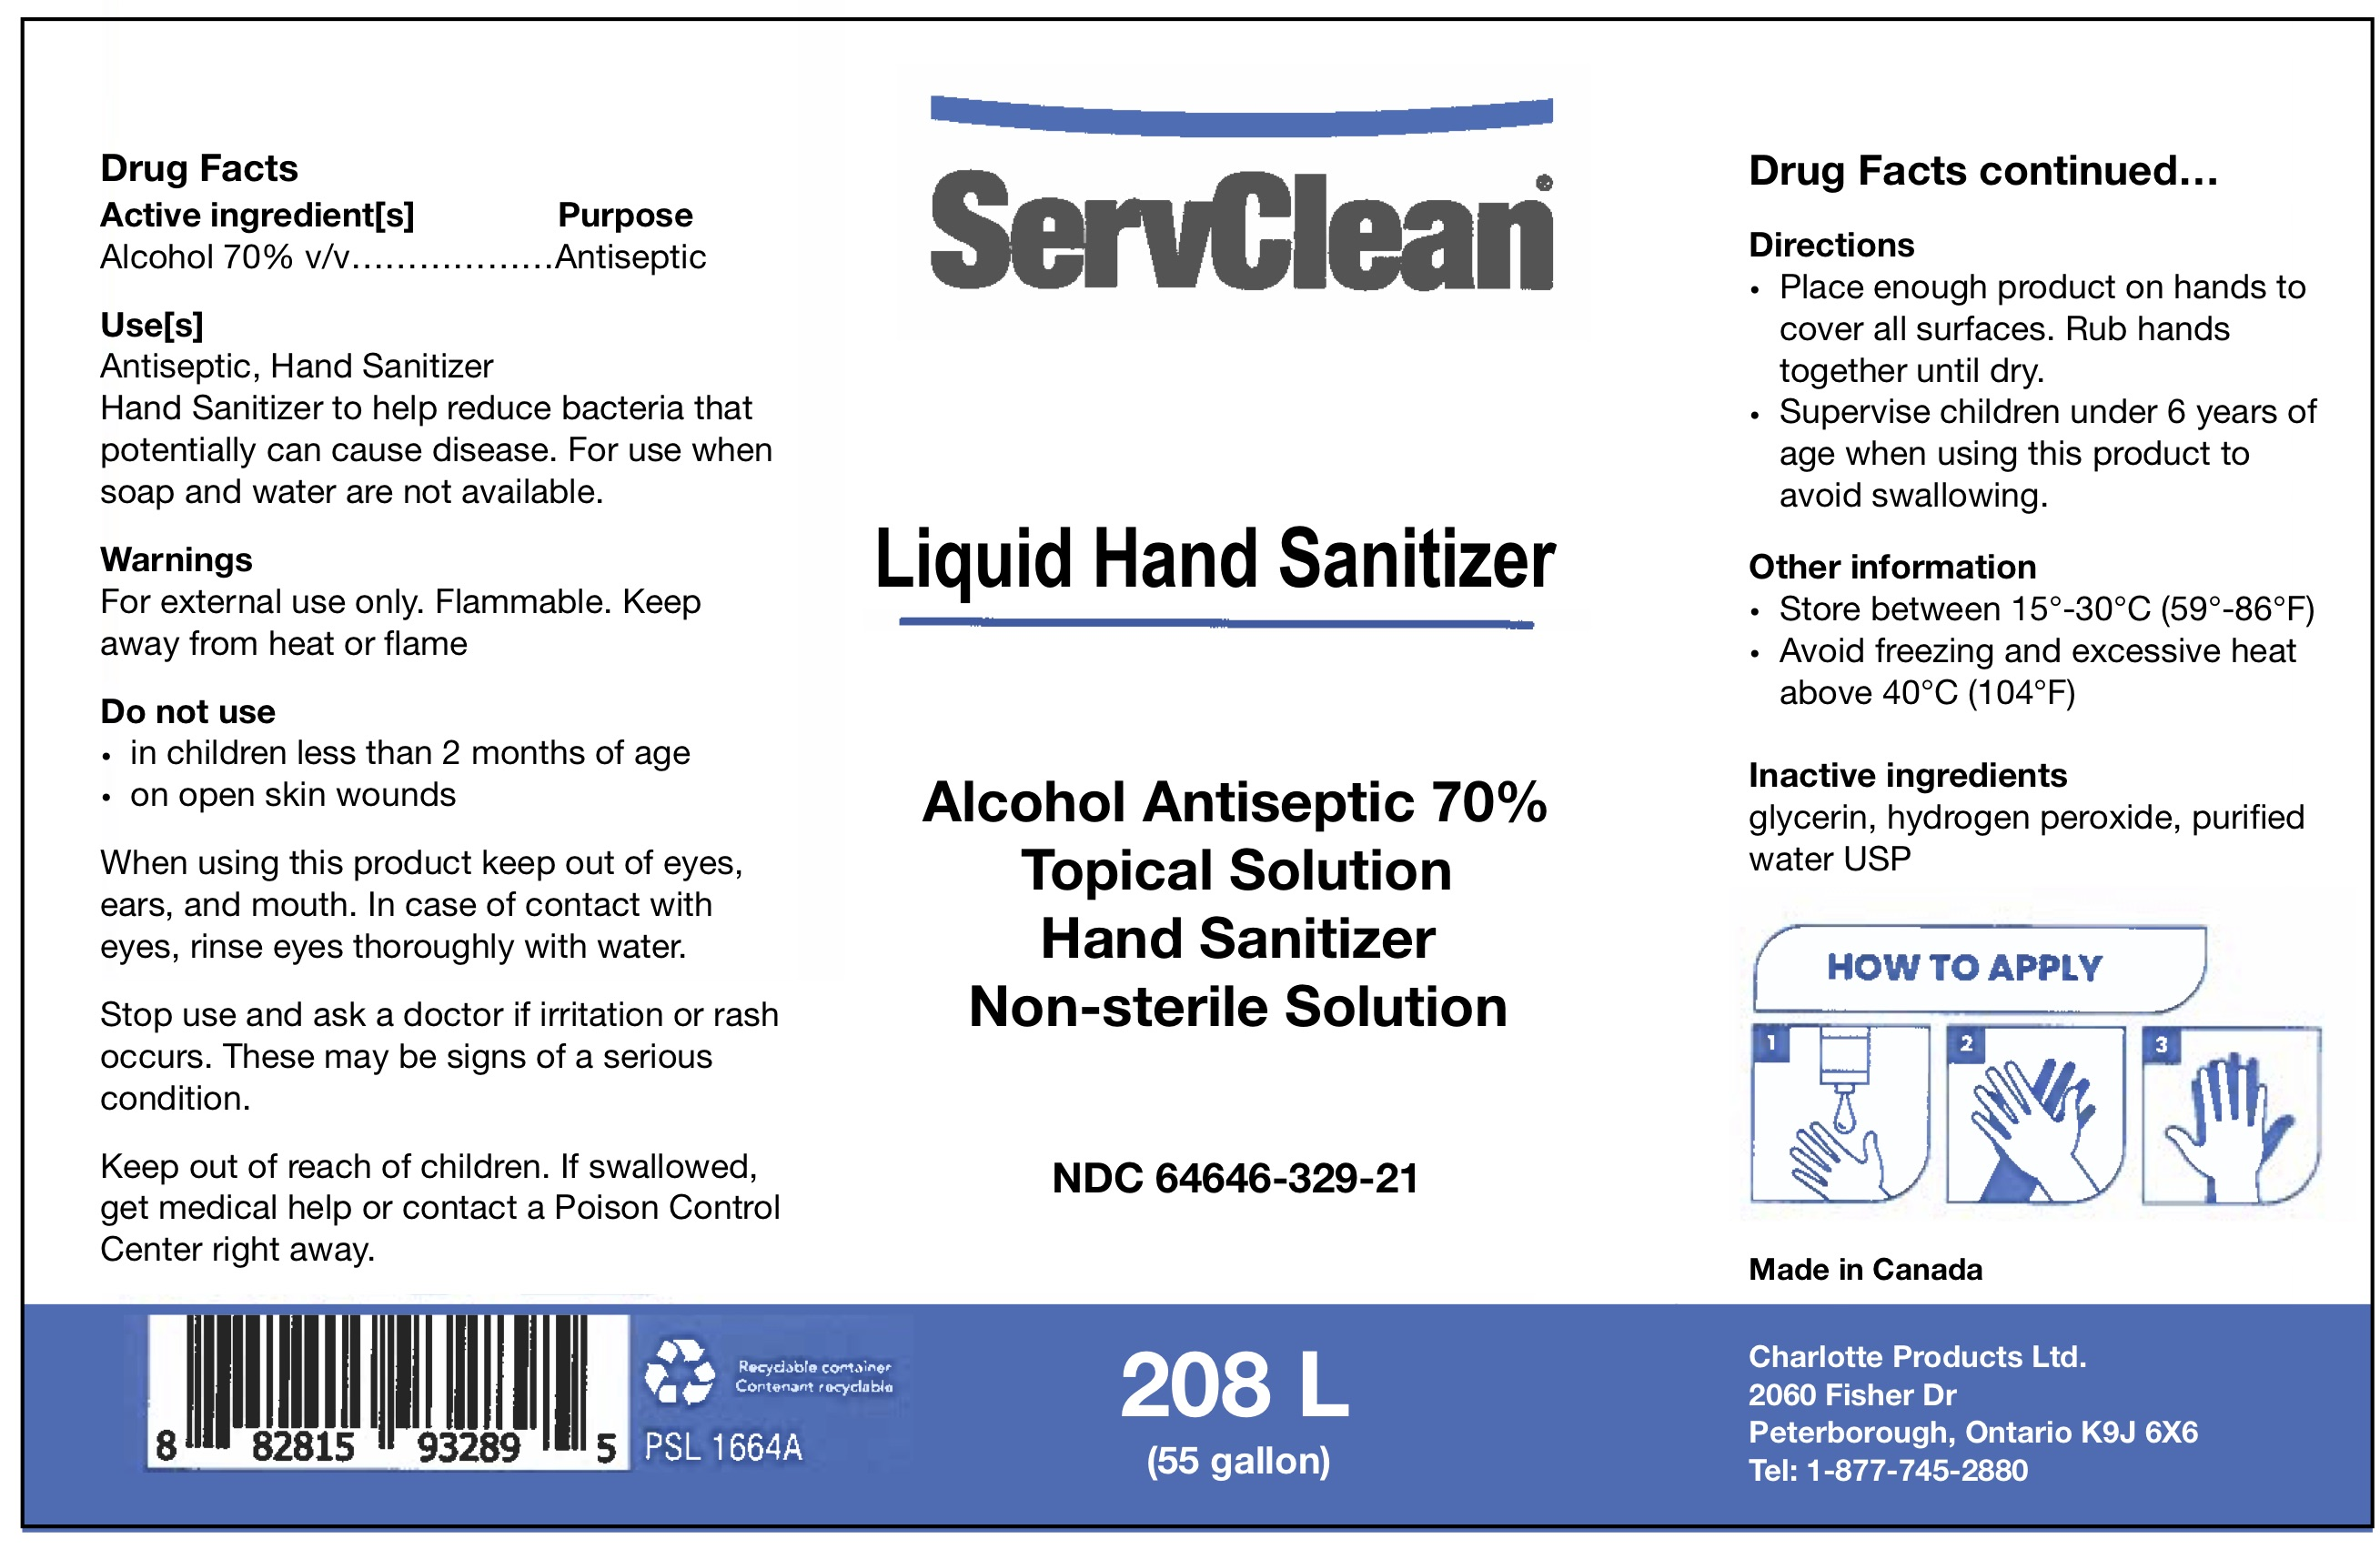 Liquid Hand Sanitizer Drum 64646-329-21